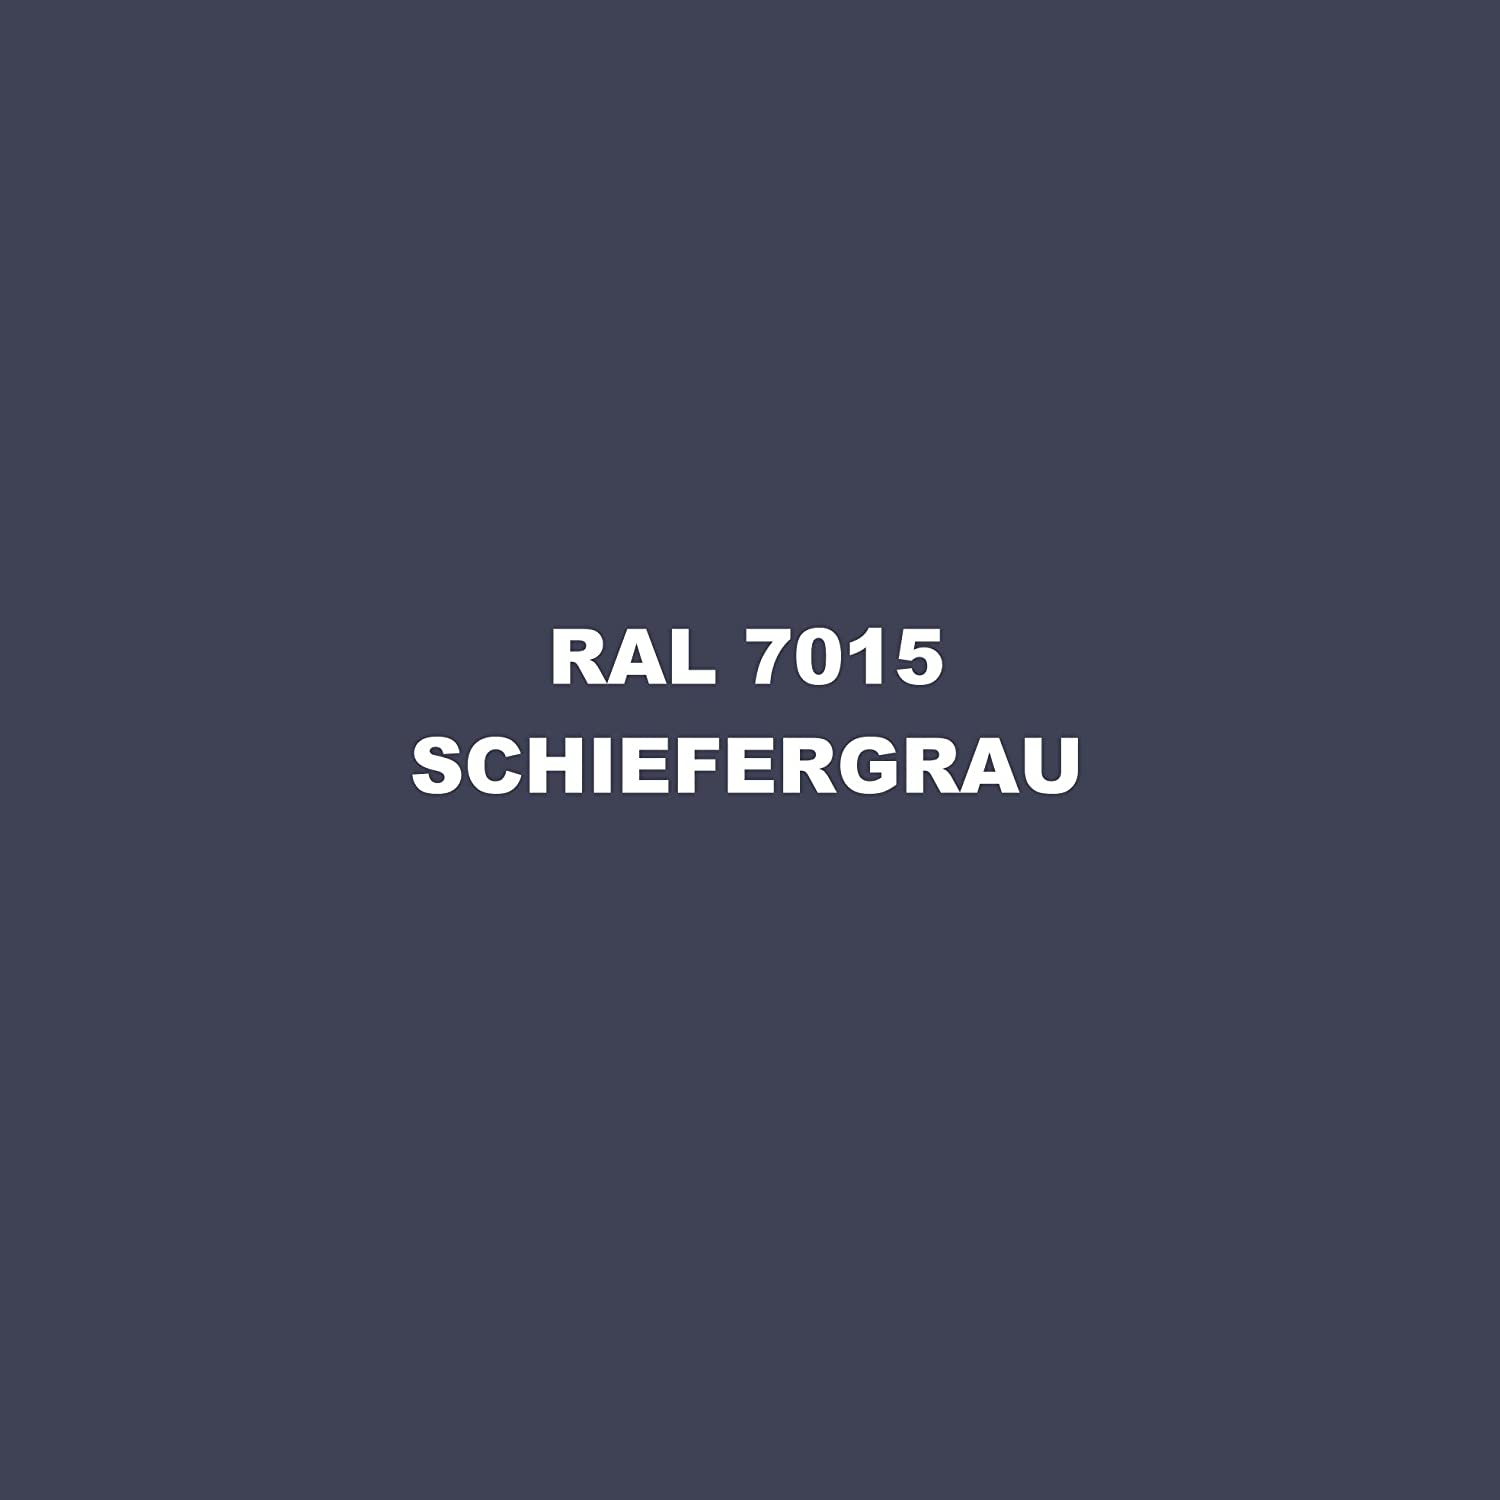 ral 7015